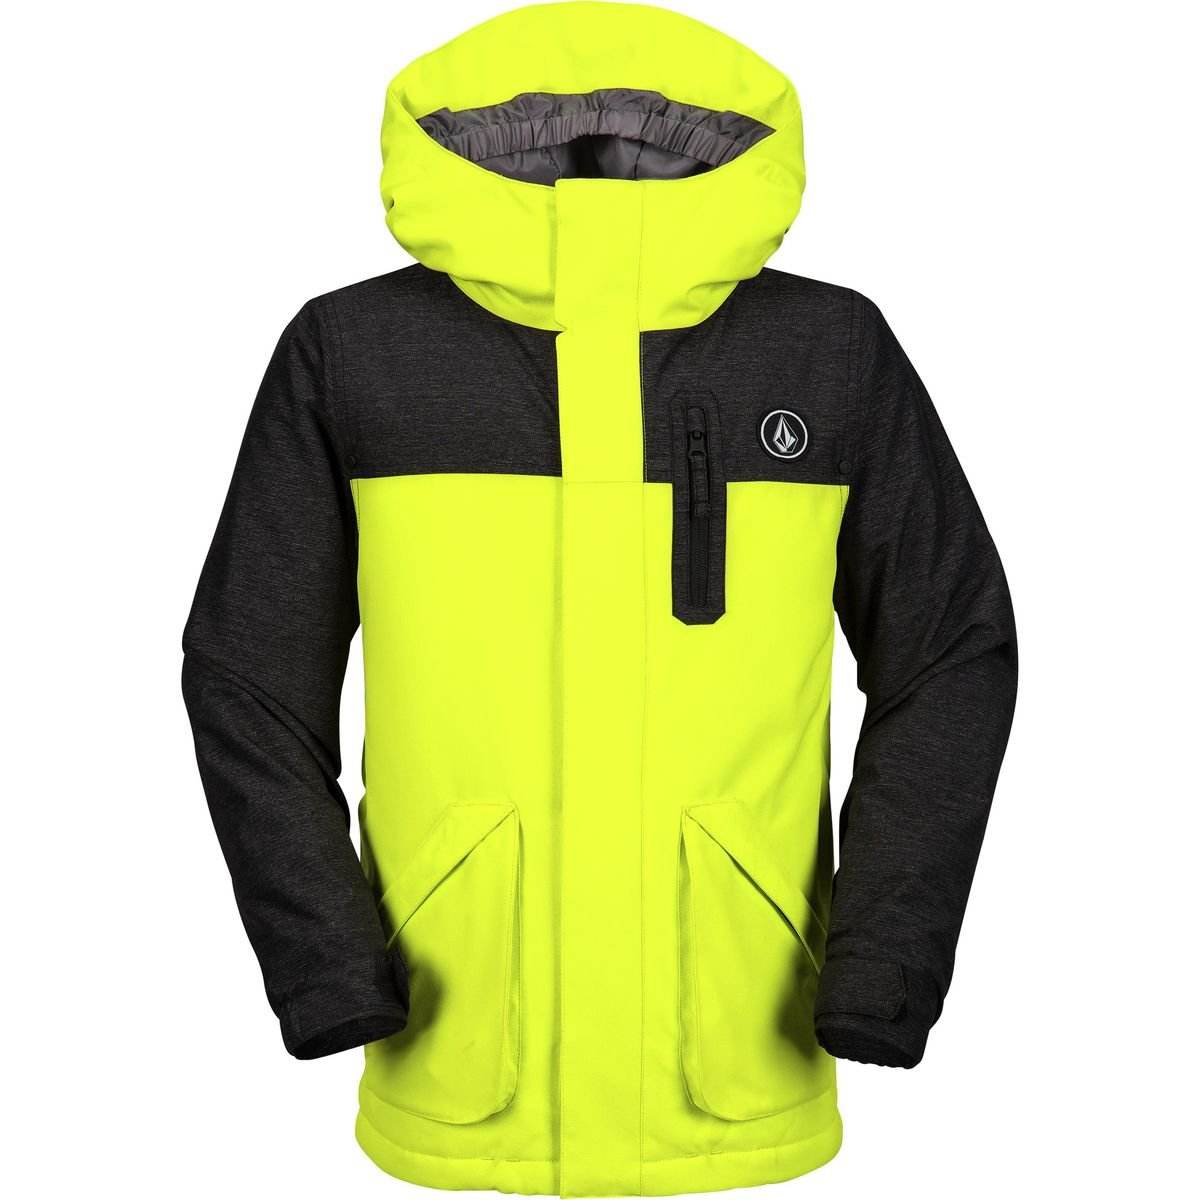 Volcom Big Boys' Vs Insulated Jacket, Lime, S by Volcom